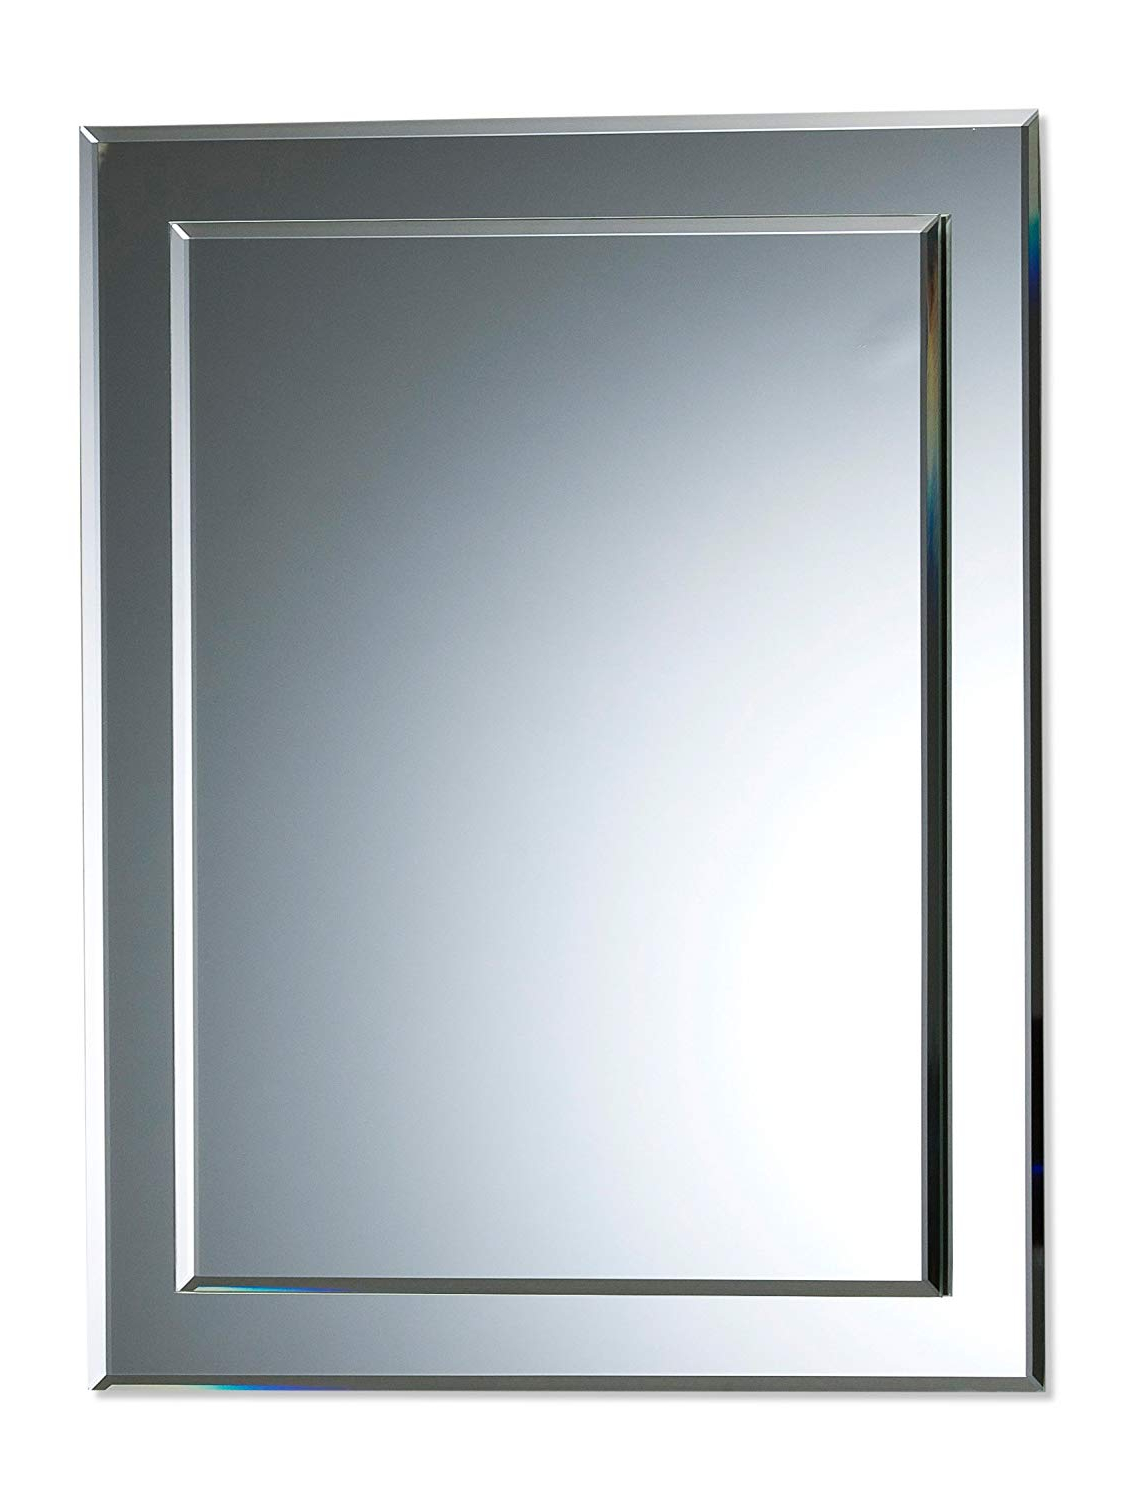 Most Current Plain Wall Mirrors Regarding Neue Design Bathroom Mirror Double Layer Rectangular Wall Plain – Beautiful Quality Mirror For Your Bathroom Or Other Rooms In Your Home 50Cm X 40Cm (View 13 of 20)